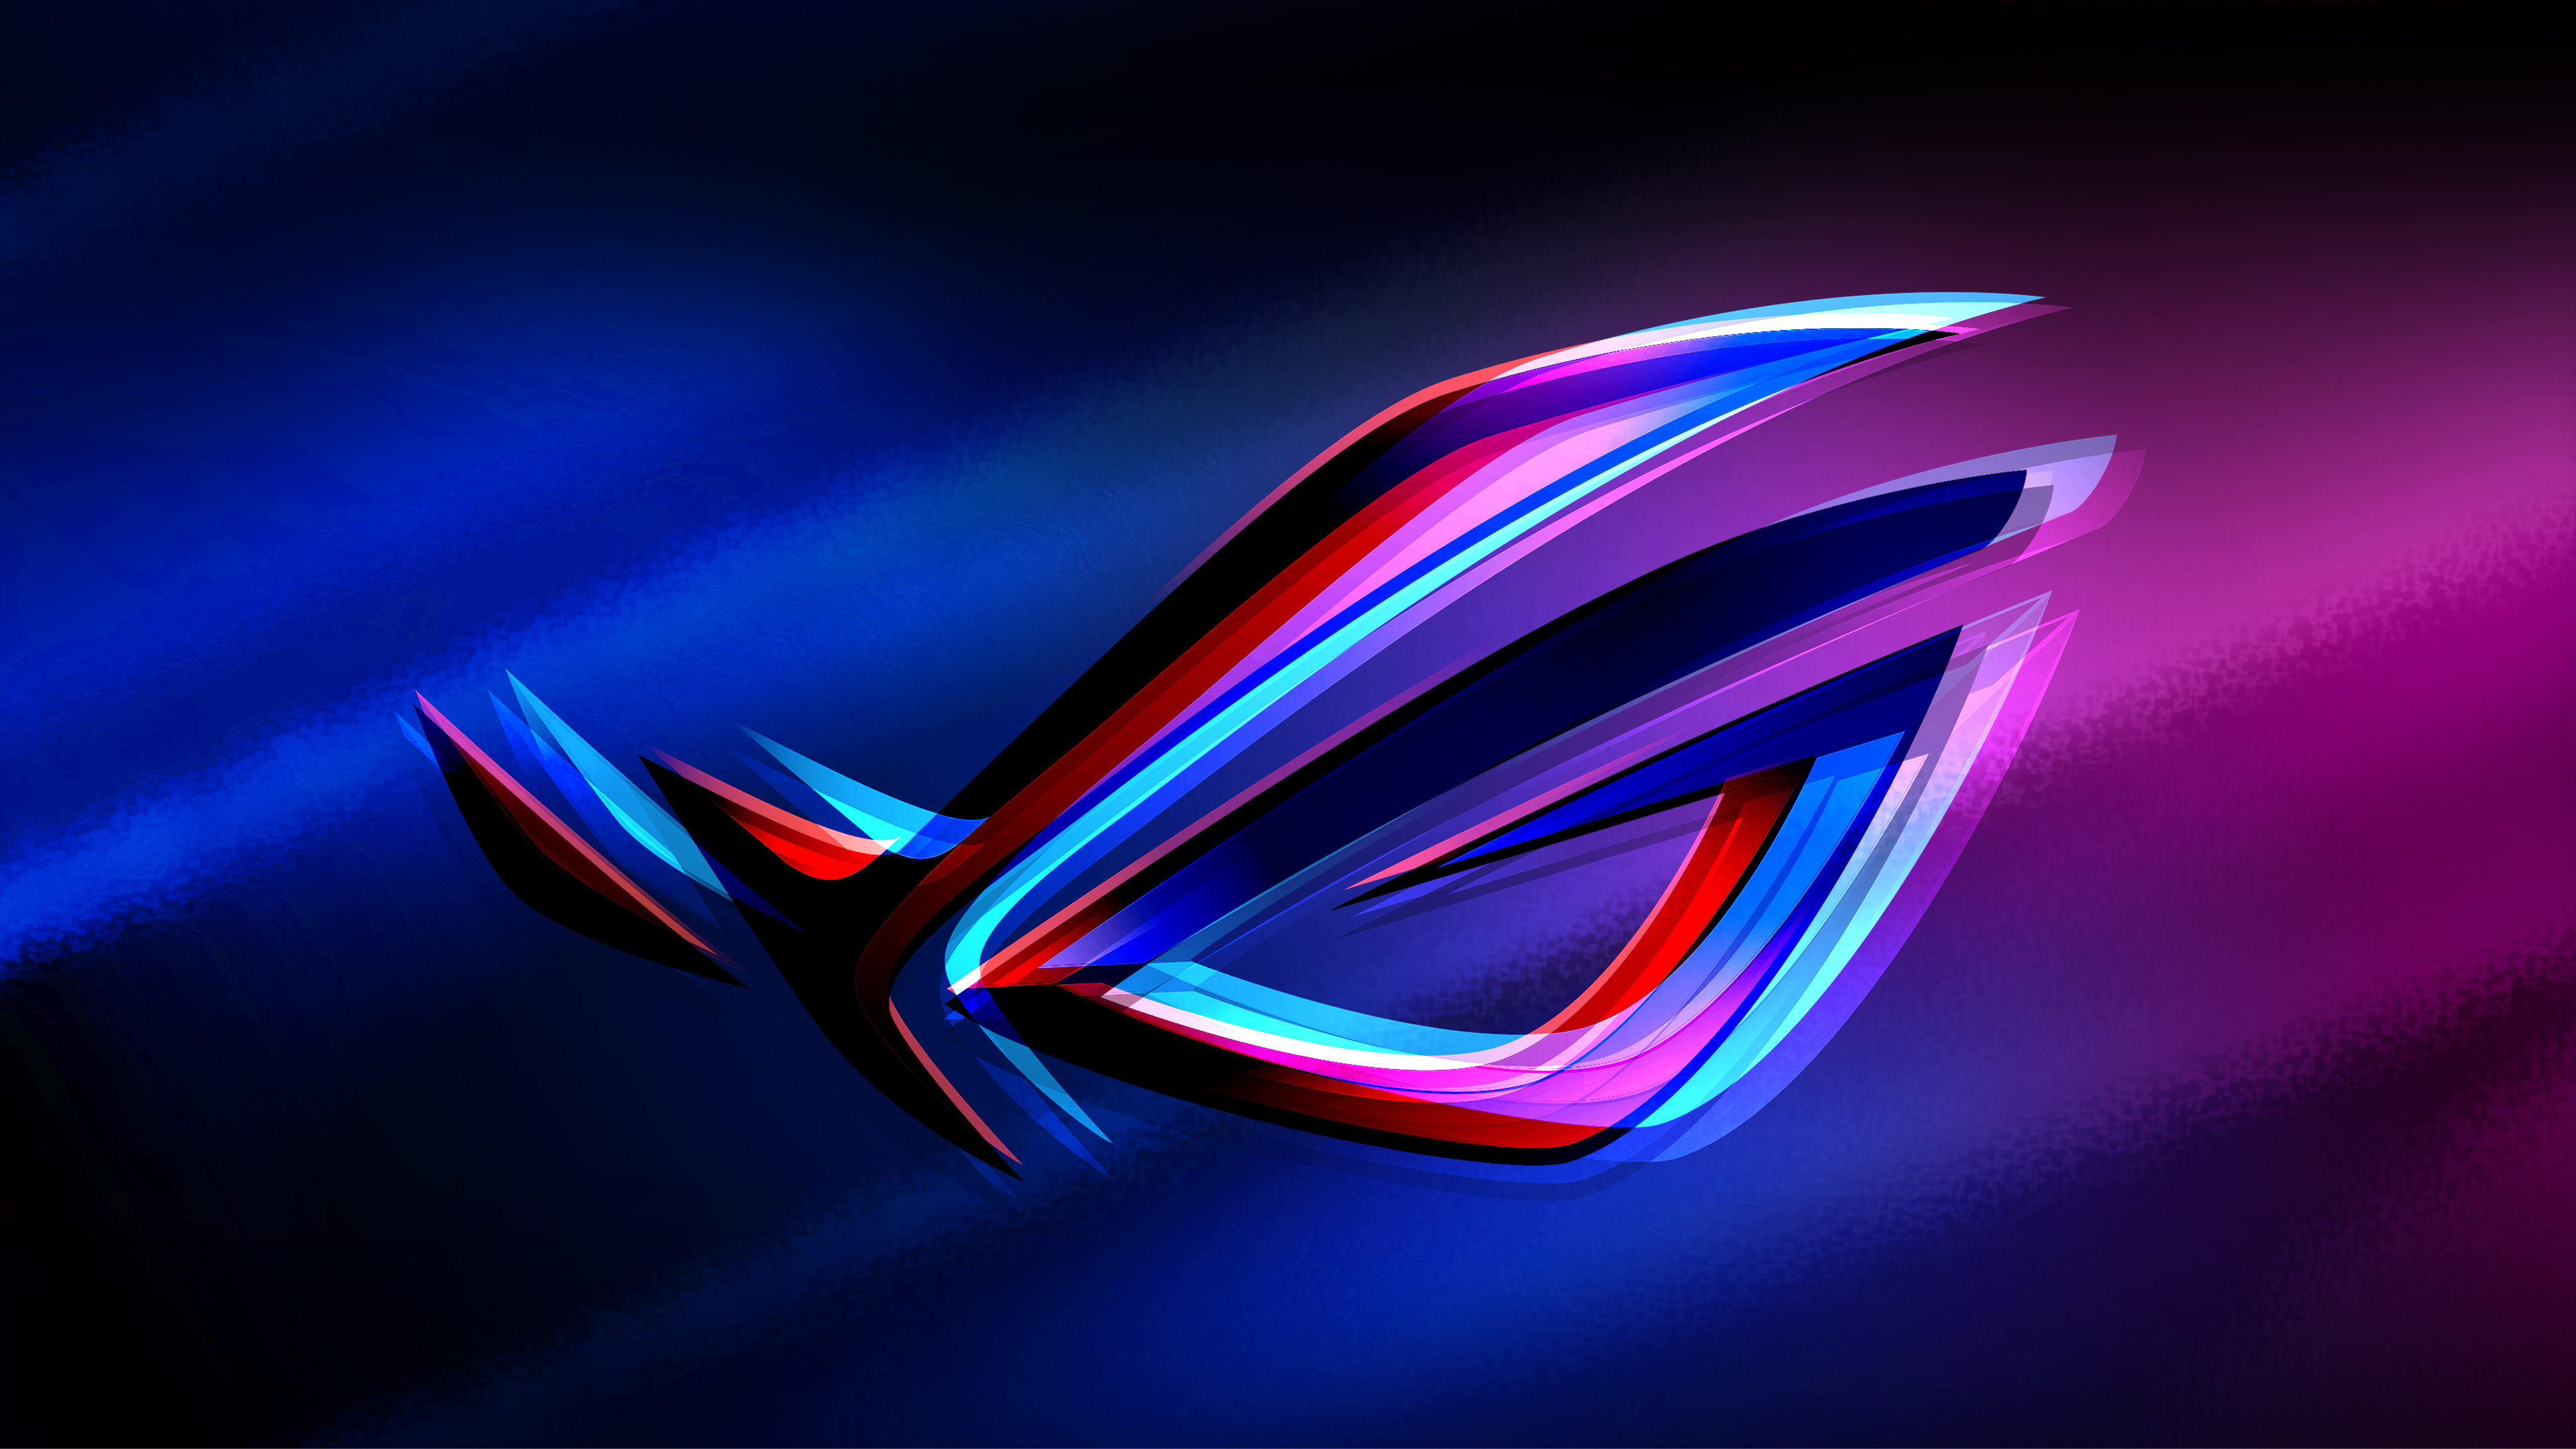 3840x2160 Rog Logo 4k Hd 4k Wallpapers Images Backgrounds Photos